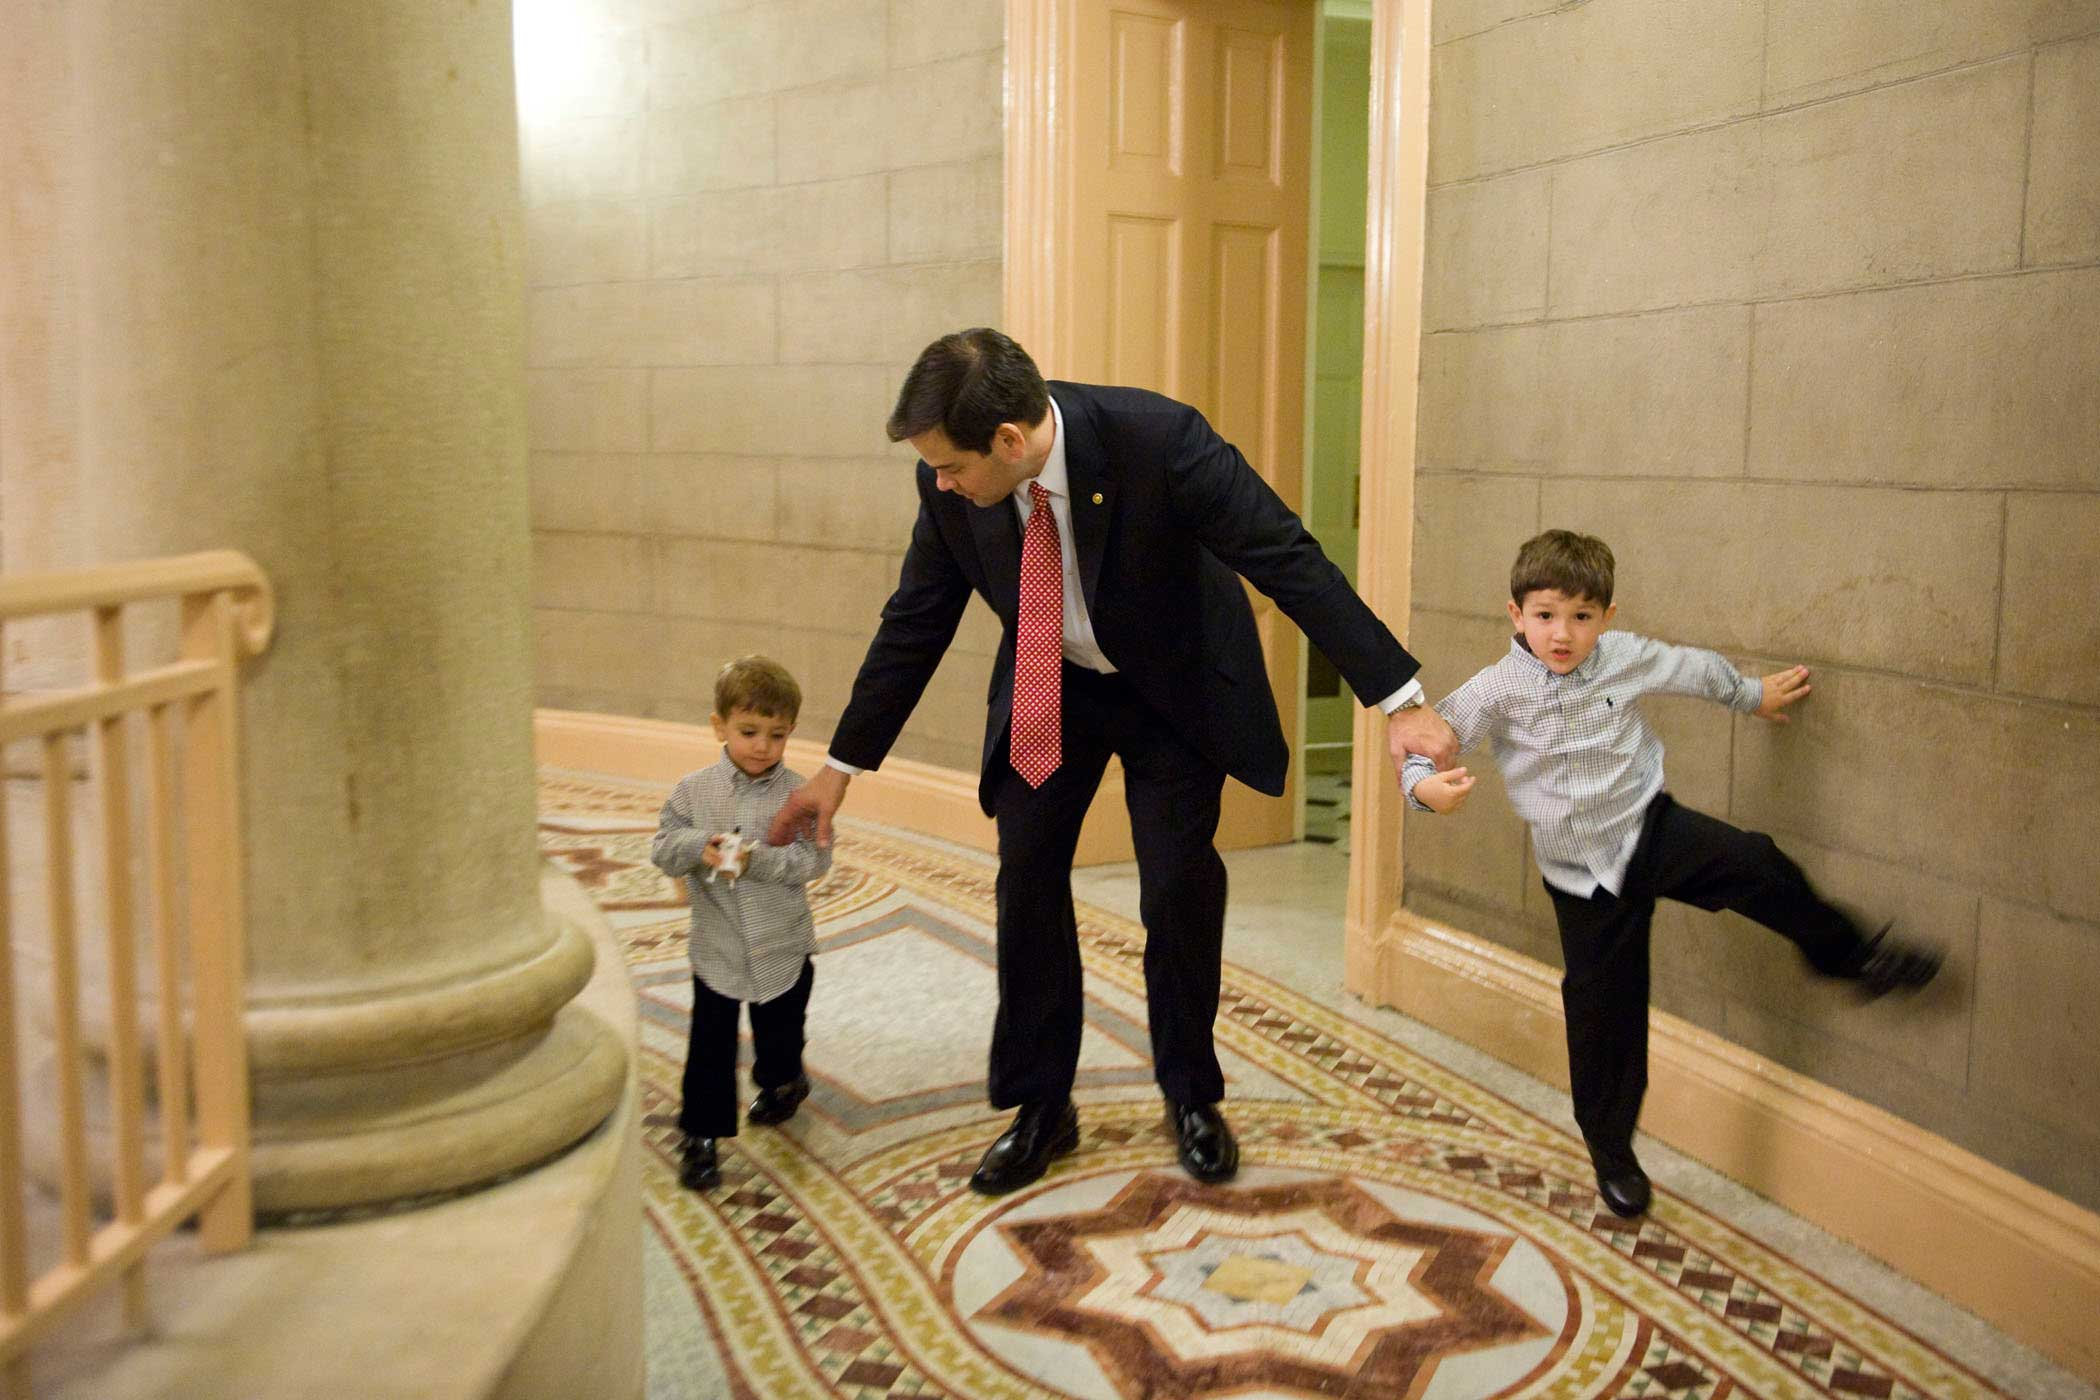 Marco Rubio and his sons Anthony, 5, right, and Dominic, 3, make their way to a swearing in ceremony for the 112th Congress in the Old Senate Chamber in Washington on Jan. 5, 2011.